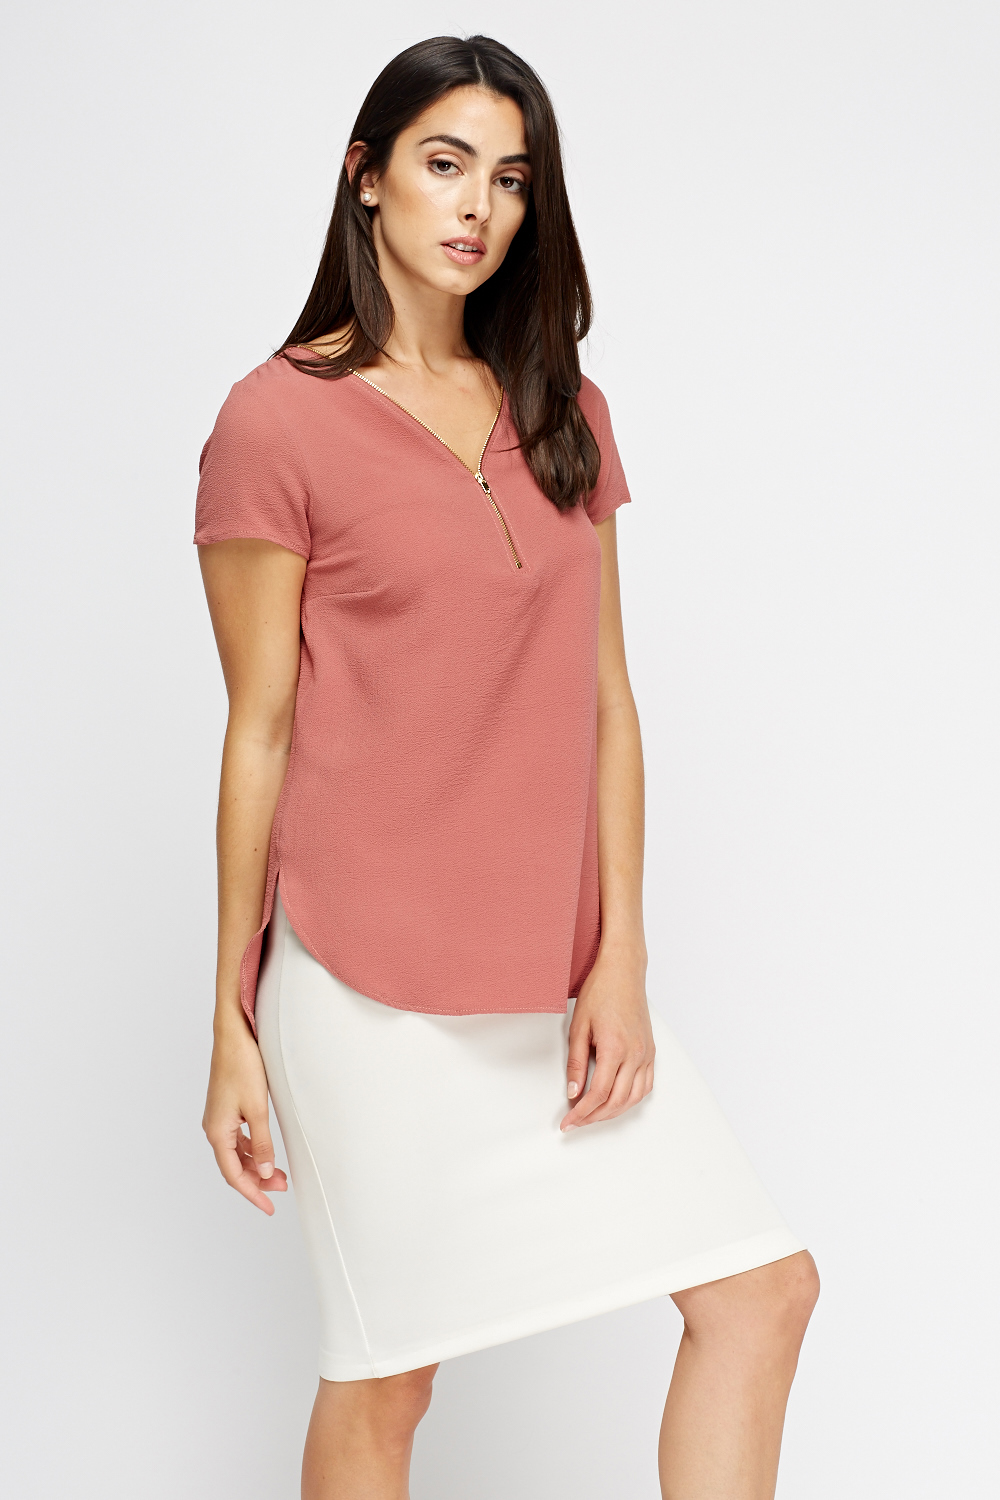 Zip Front Blouse Pink Just 163 5